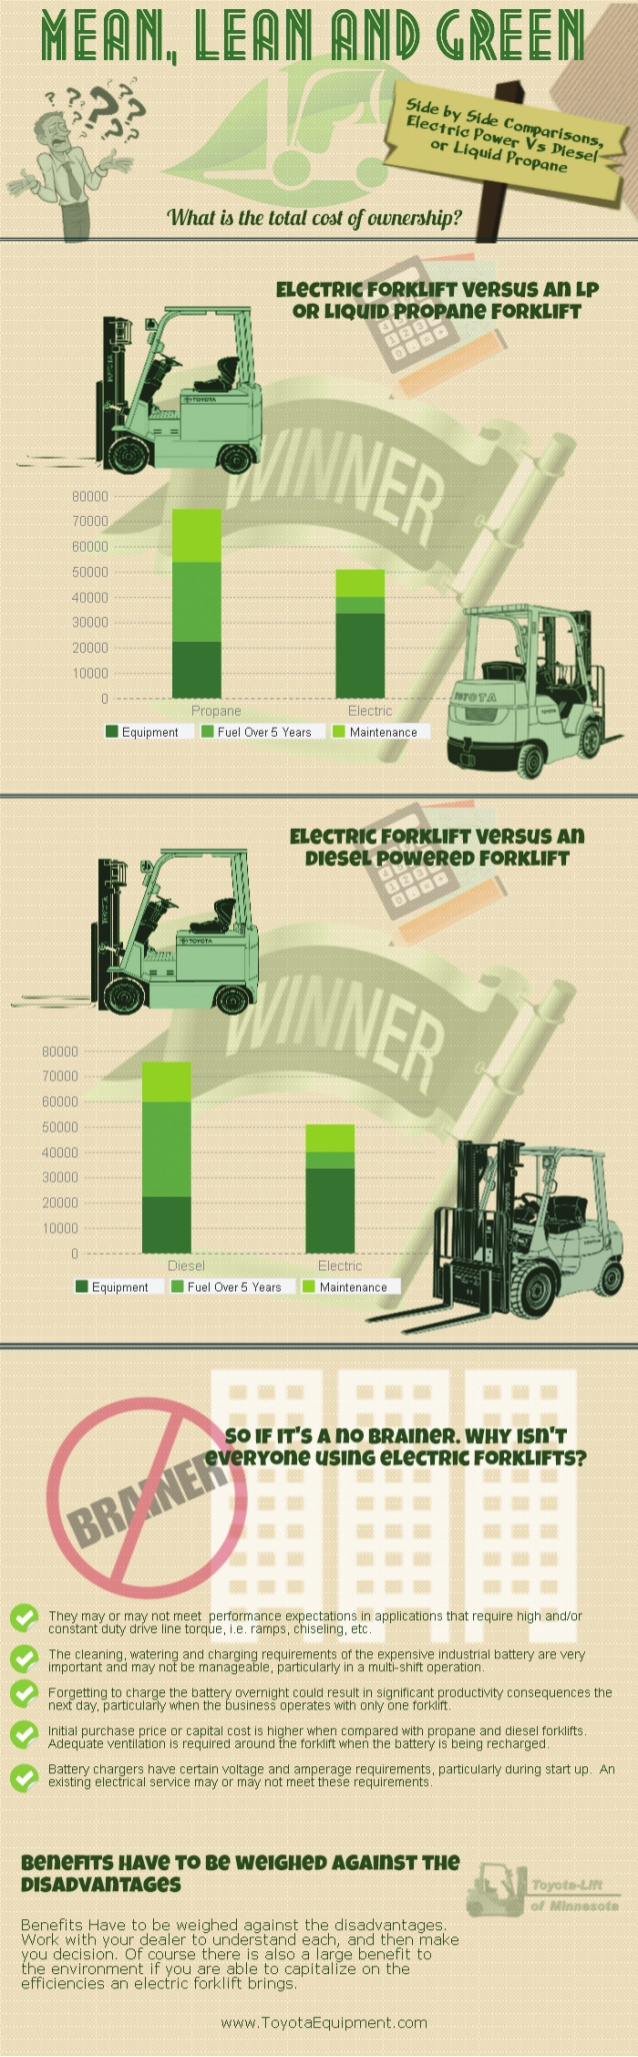 Comparing costs of an electric forklift versus other fuels comparing costs of an electric forklift versus other fuels xflitez Gallery